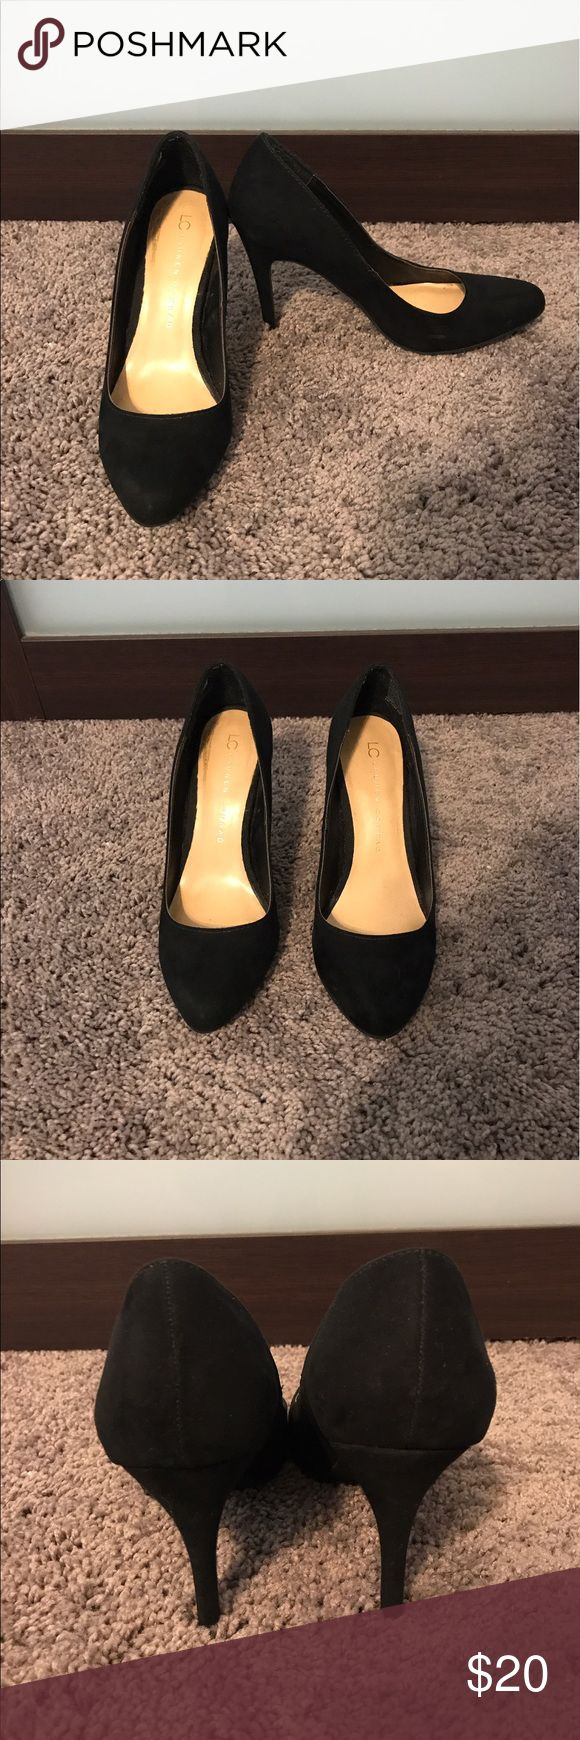 Black Lauren Conrad pumps Black Lauren Conrad pumps. Minimally worn. Some minor wear and tear as shown in picture. Everything in my closet must go. Make me an offer. LC Lauren Conrad Shoes Heels